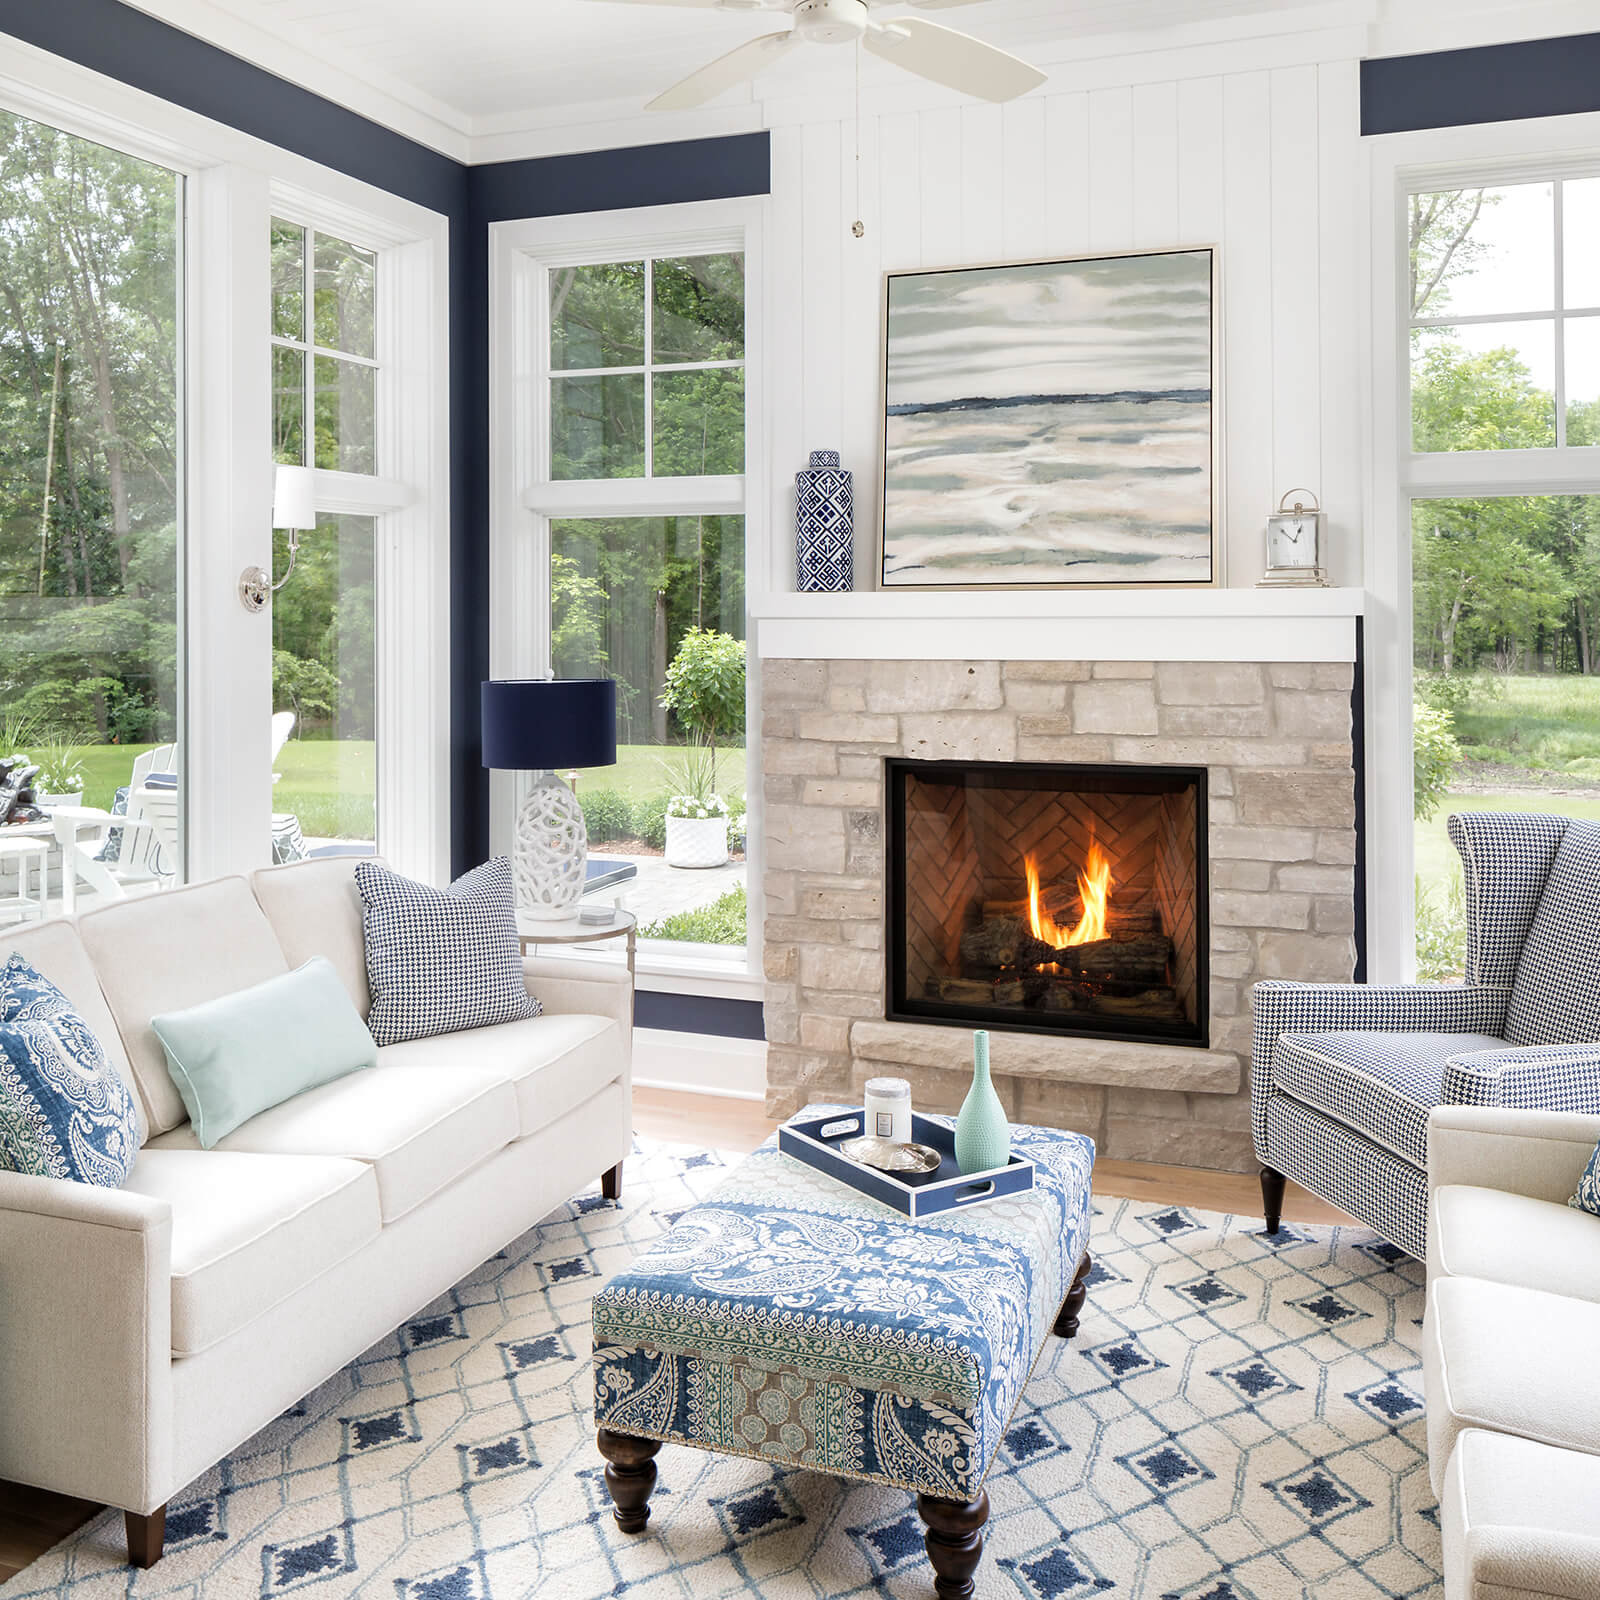 Cozy living room with Marvin Elevate Casement Windows and Elevate Direct Glaze Windows